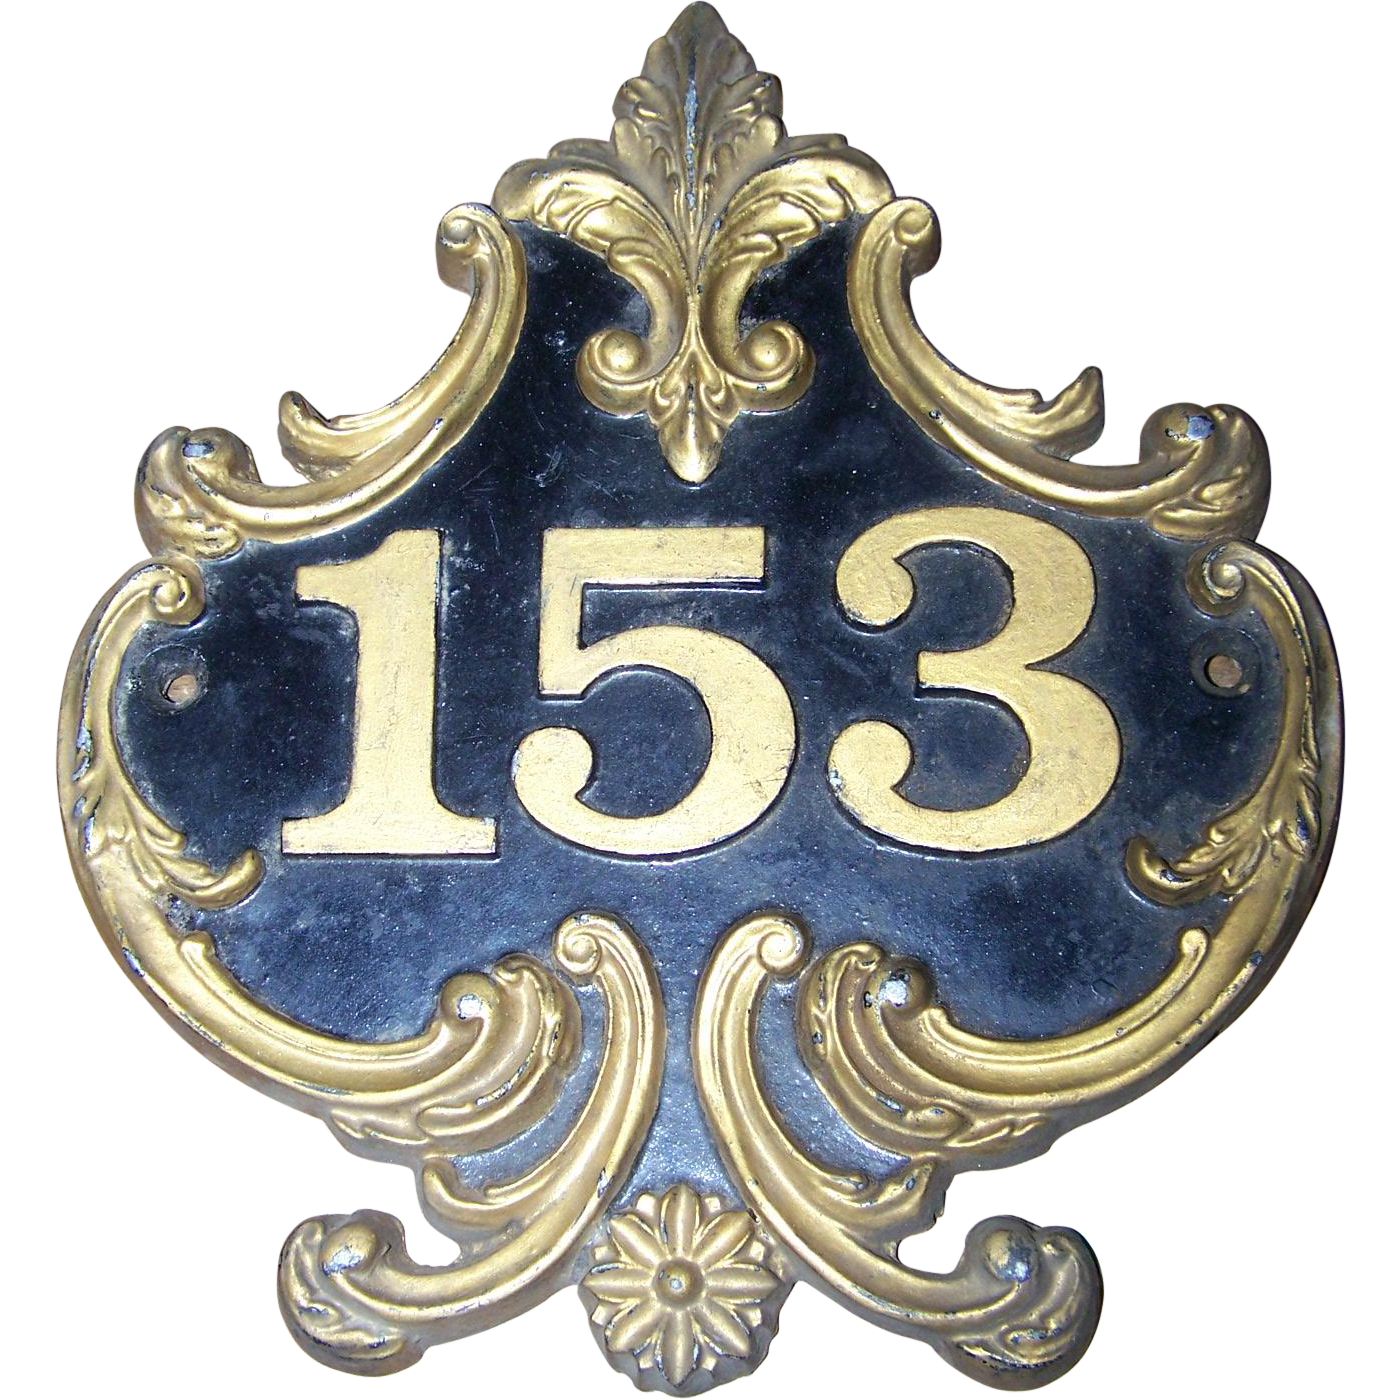 decorative cast metal ware house number address street sign plaque victoria 39 s purrrrfect. Black Bedroom Furniture Sets. Home Design Ideas